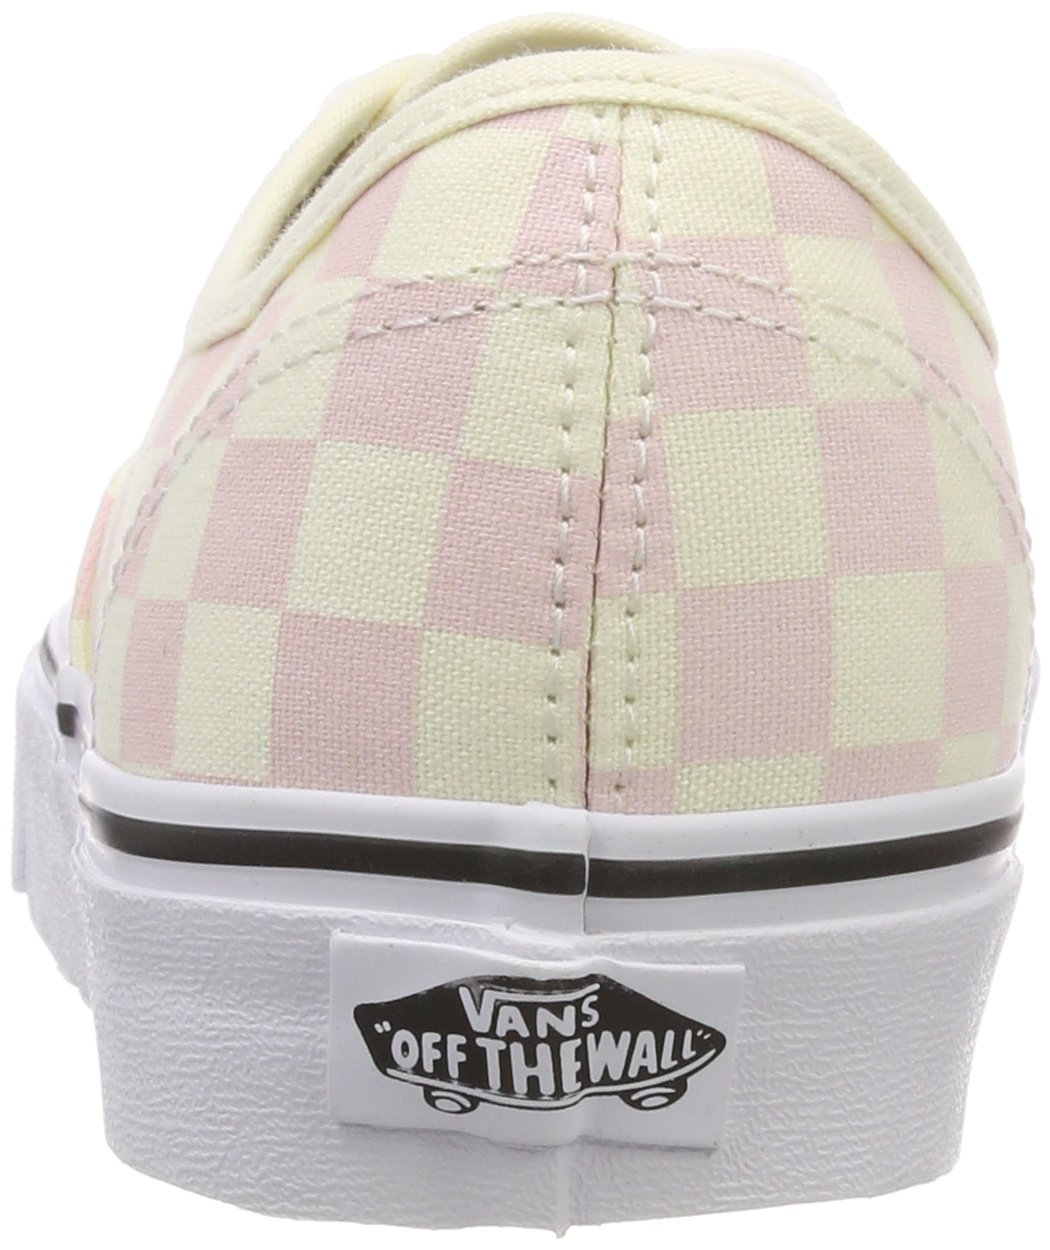 Vans Women's Authentic Trainers, Pink (Checkerboard) Chalk Pink/Classic White Q8l, 5.5 UK 38.5 EU by Vans (Image #2)